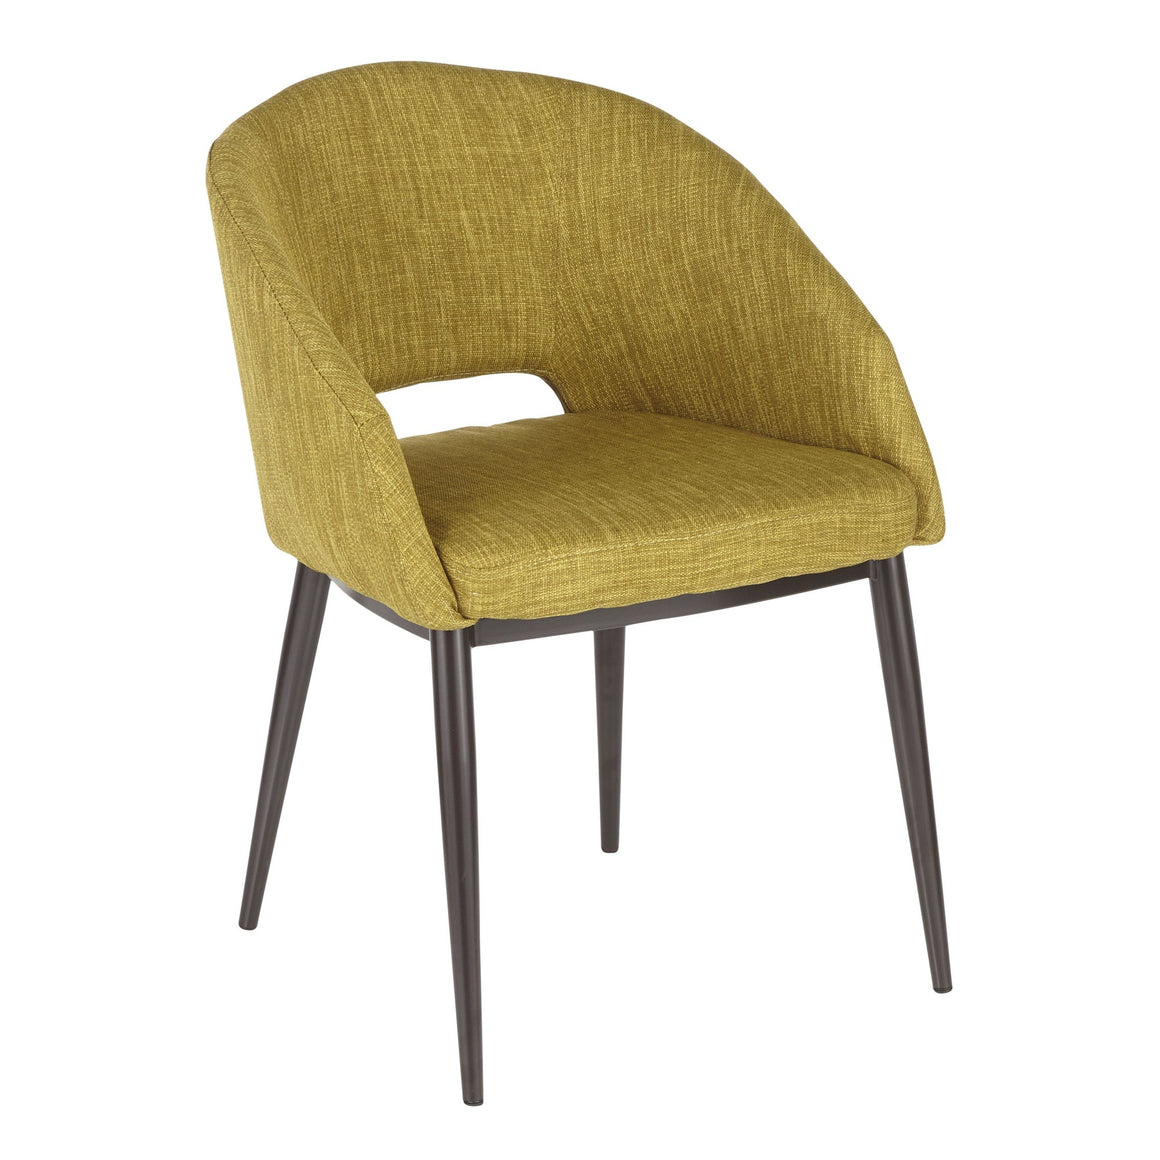 Renee Contemporary Chair in Espresso Metal Legs with Green Fabric by LumiSource